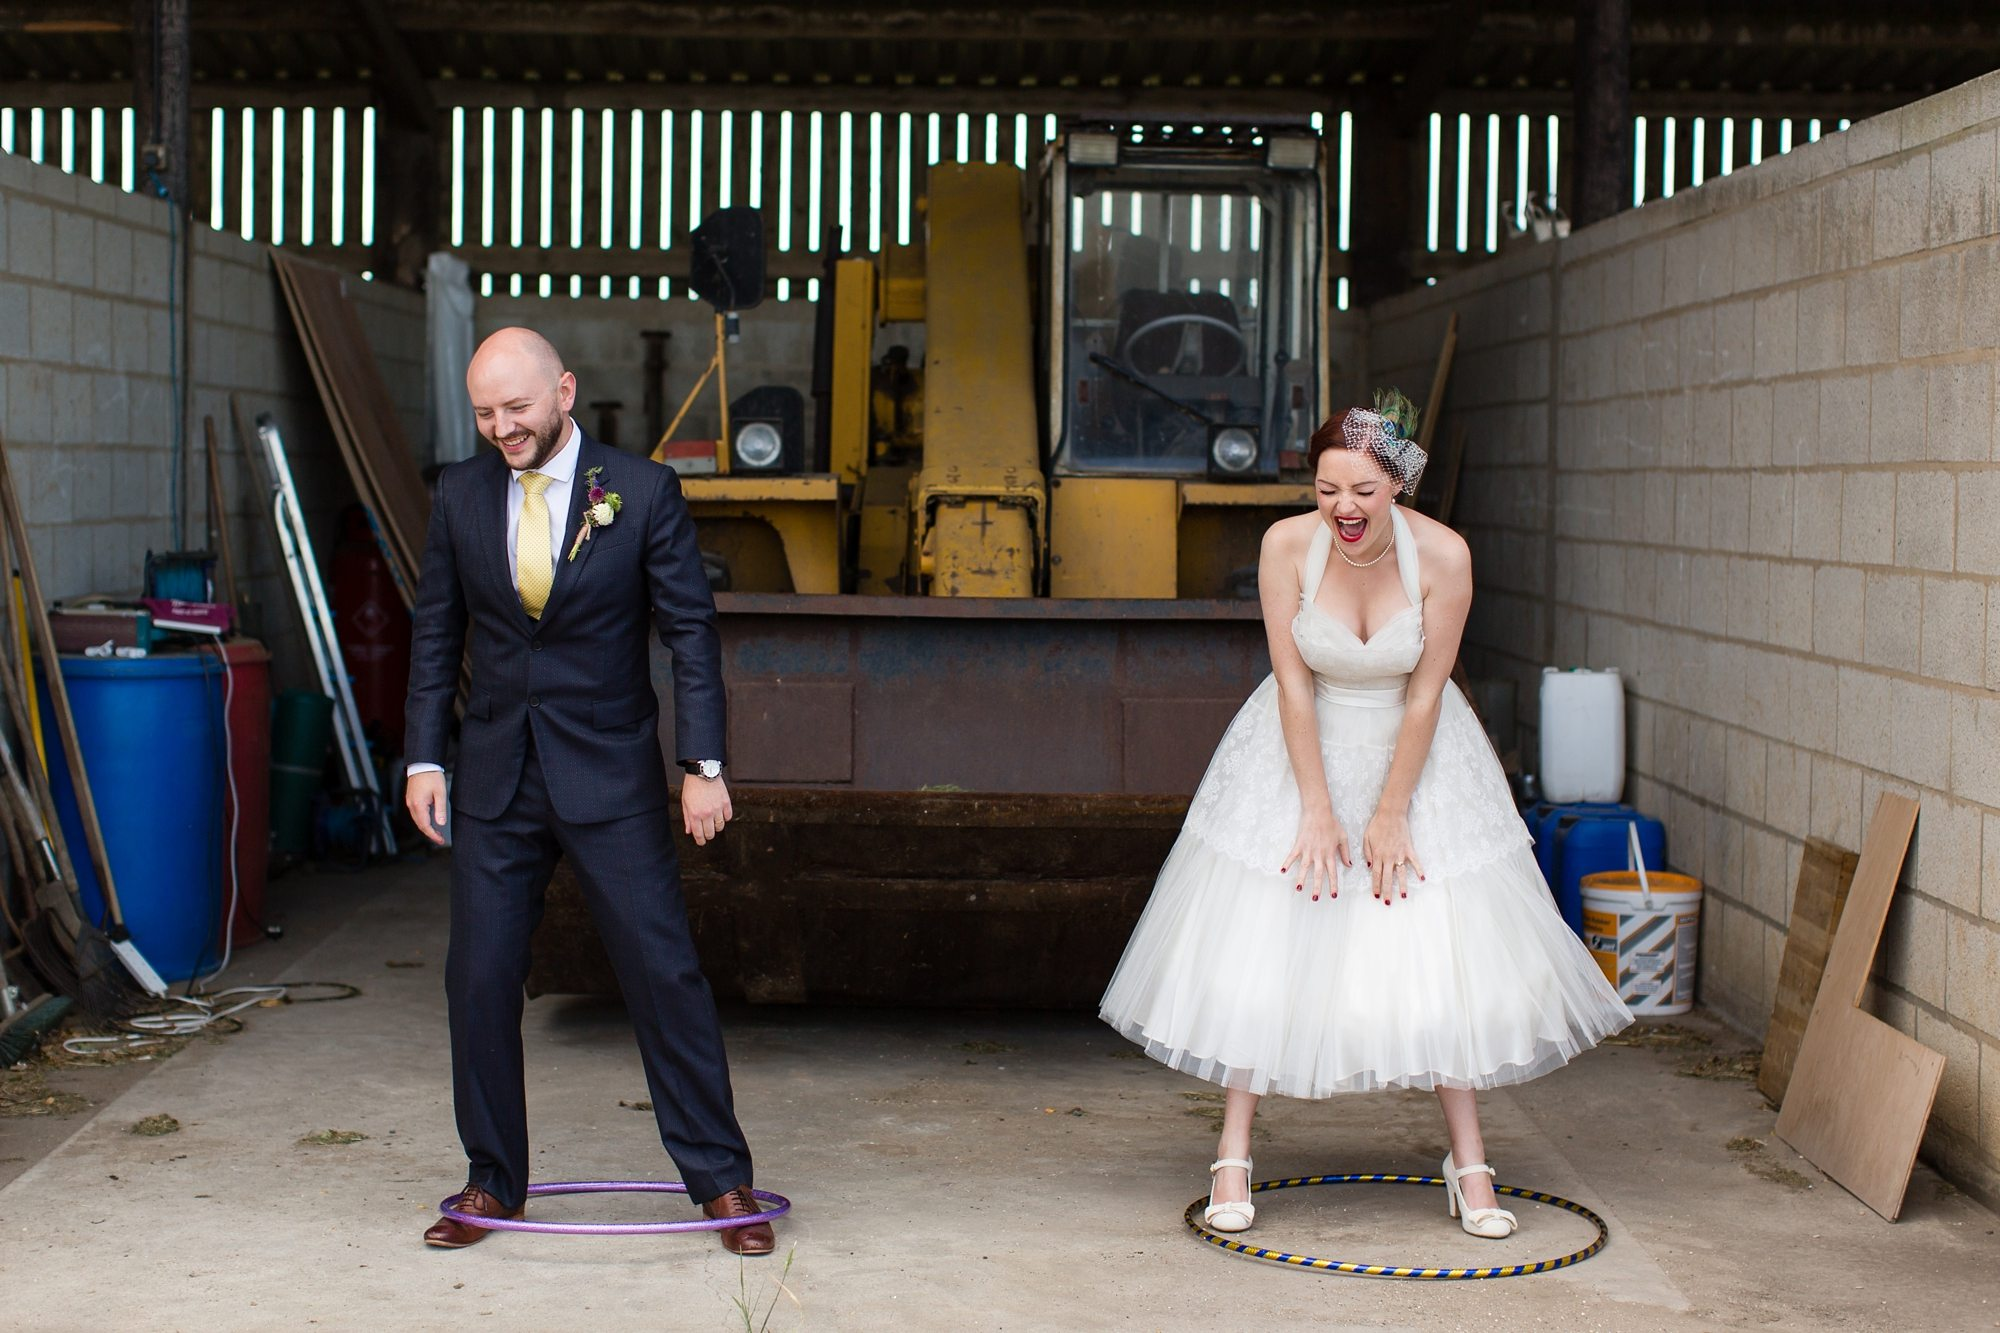 groom and bride lauging with hula hoops under their feet